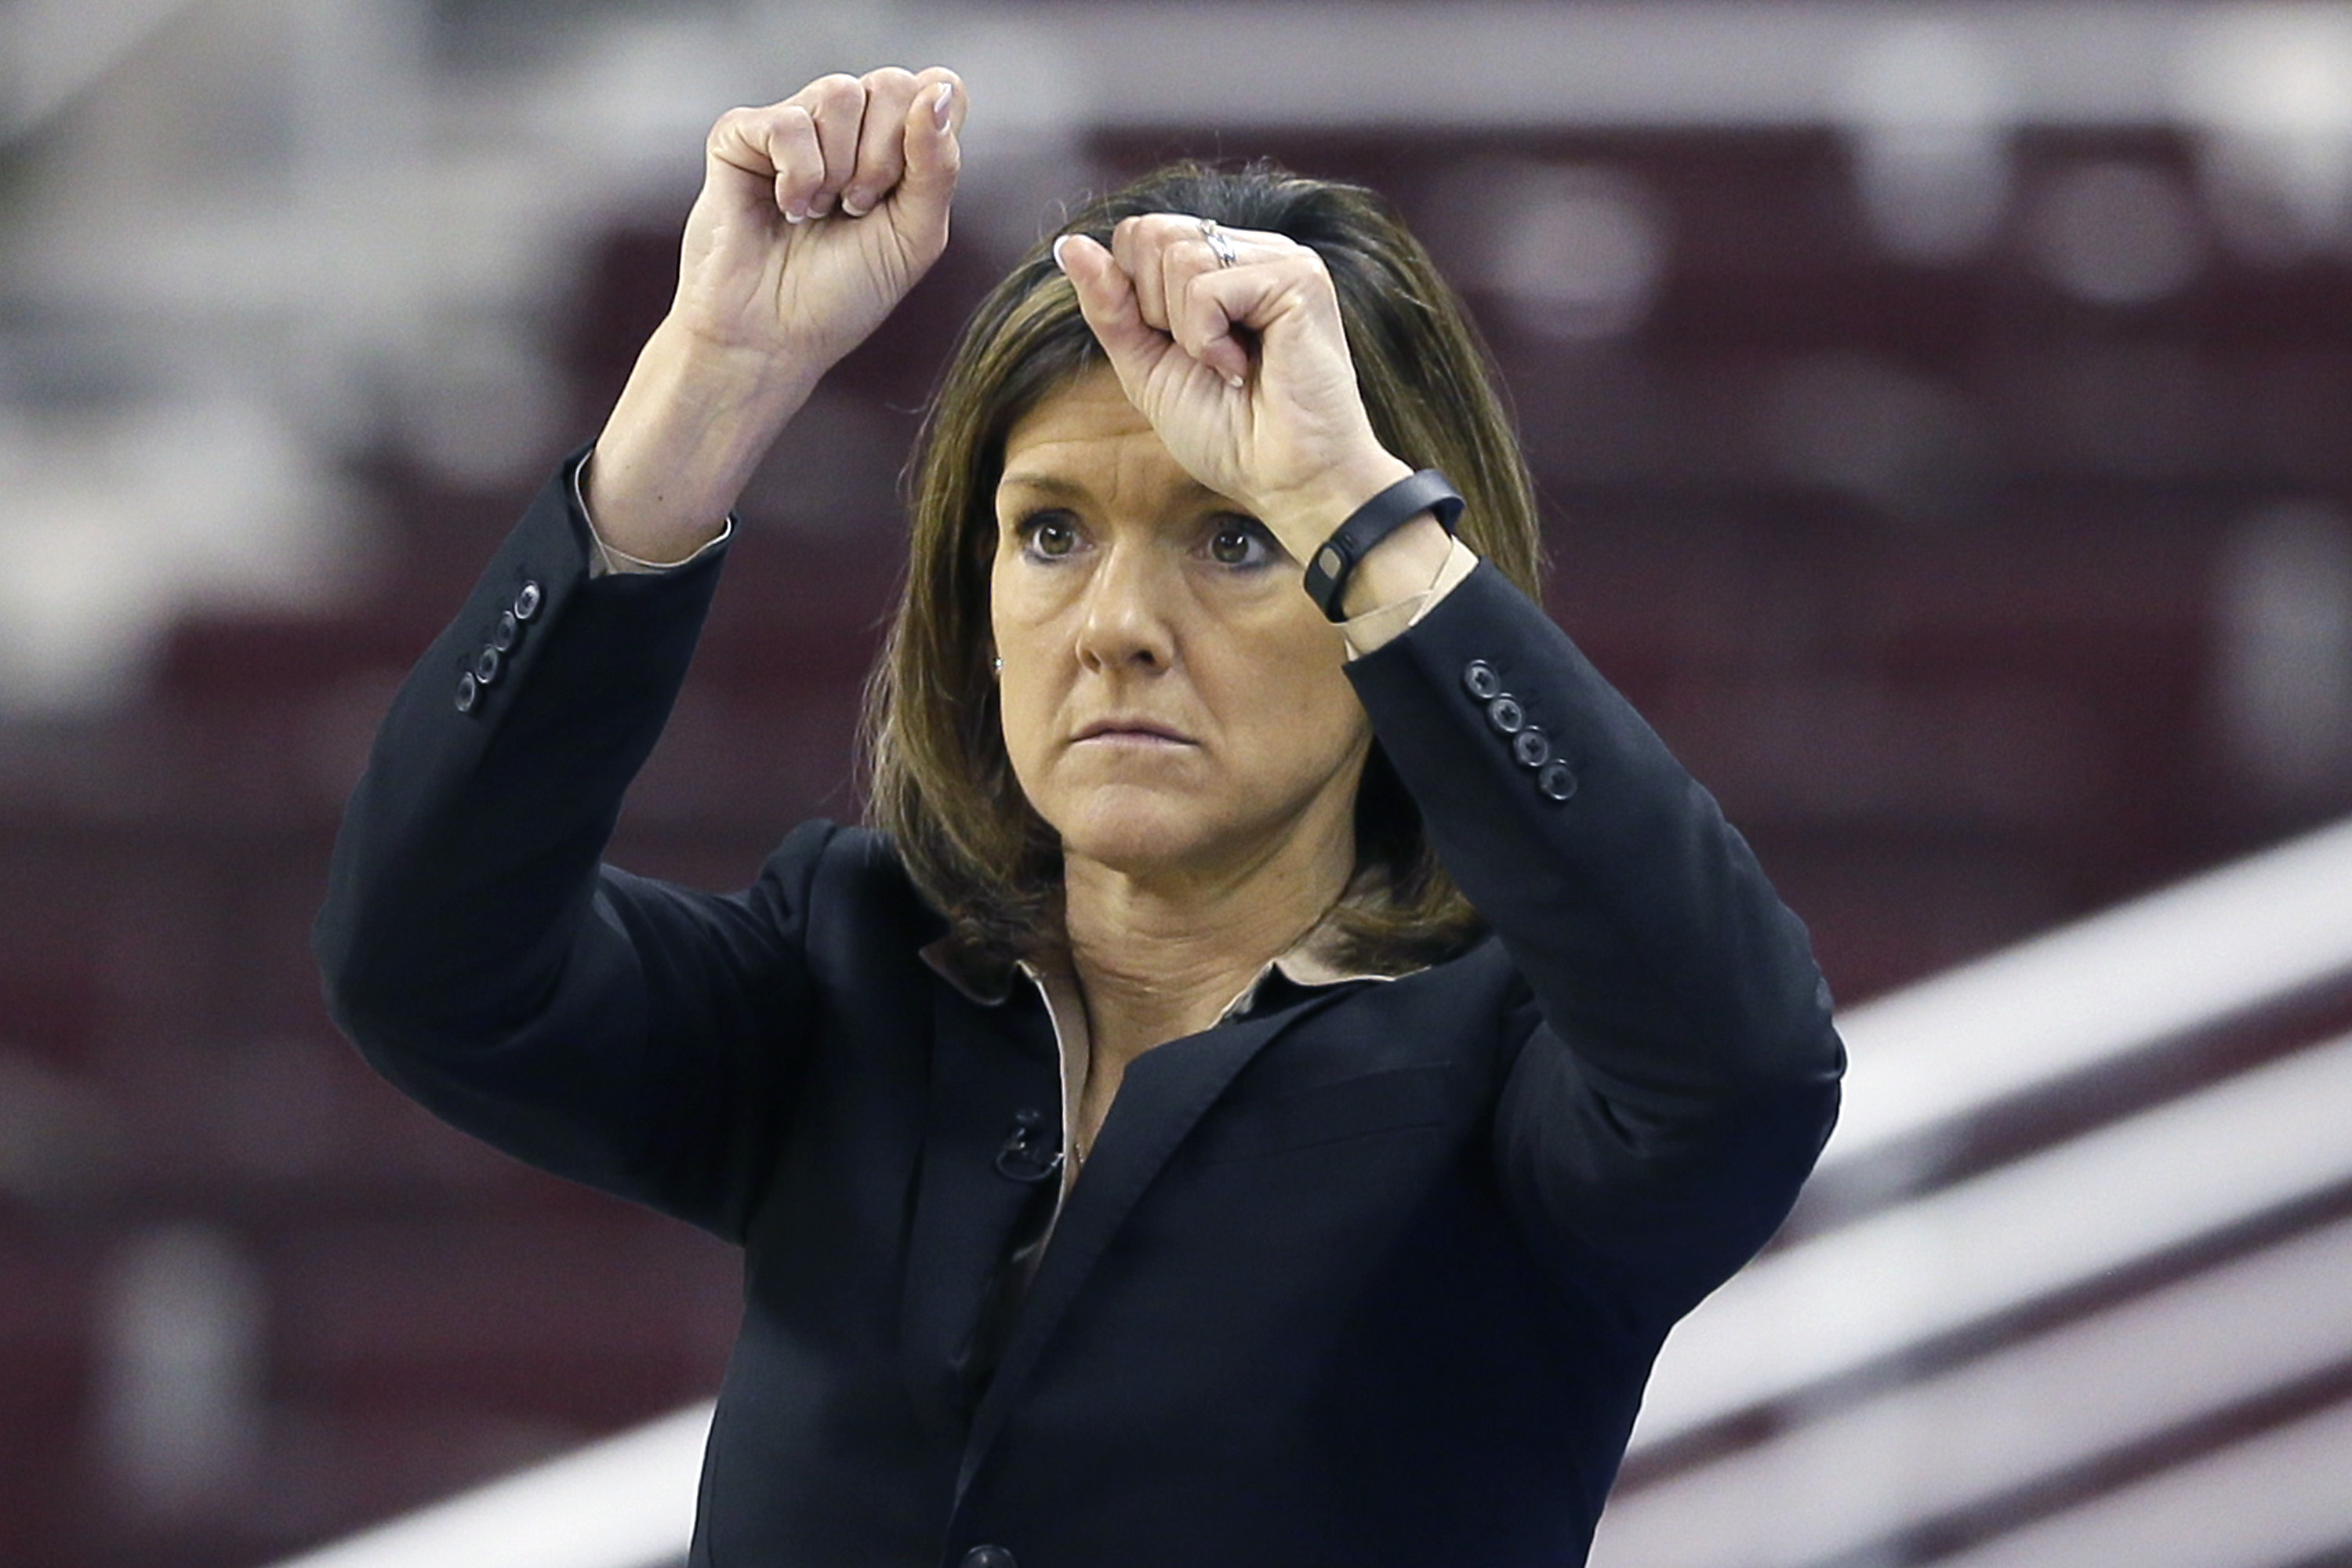 Missouri coach Robin Pingeton watches the second half of a Southeastern Conference women's tournament NCAA college basketball against Georgia game in North Little Rock, Ark., Thursday, March 5, 2015. Georgia defeated Missouri 75-64. (AP Photo/Danny Johnst